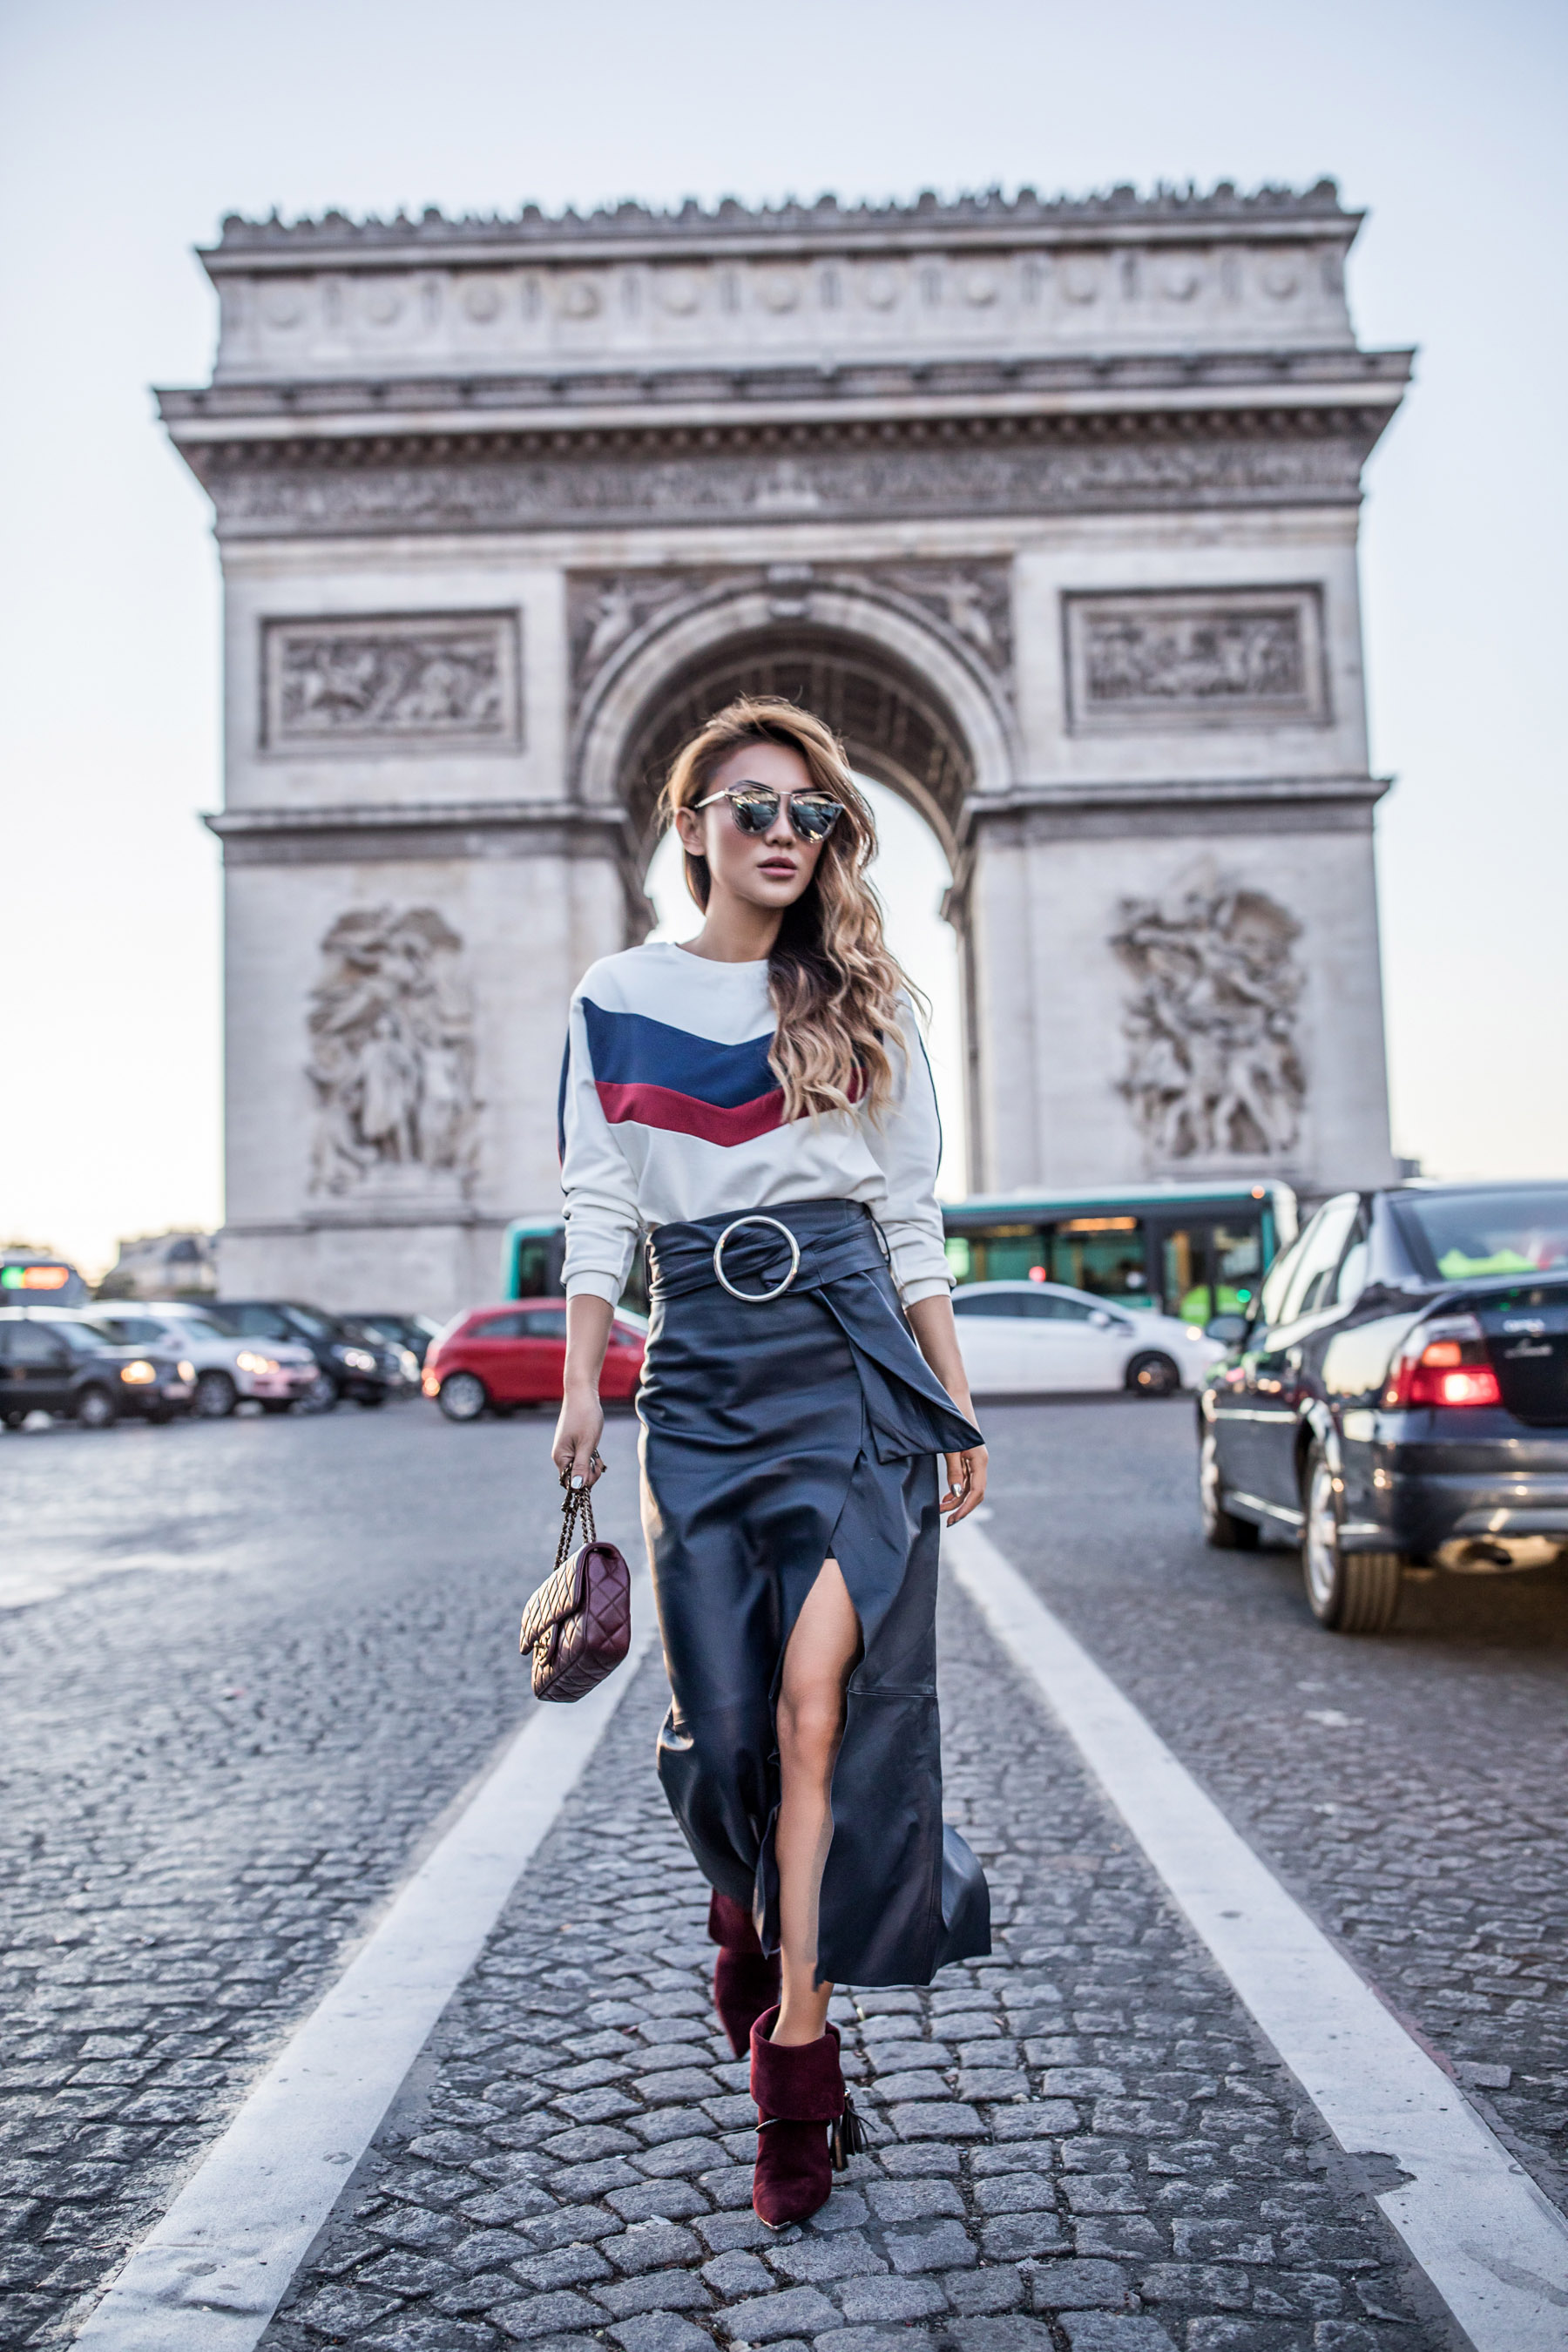 High-waisted leather max skirt // NotJessFashion.com